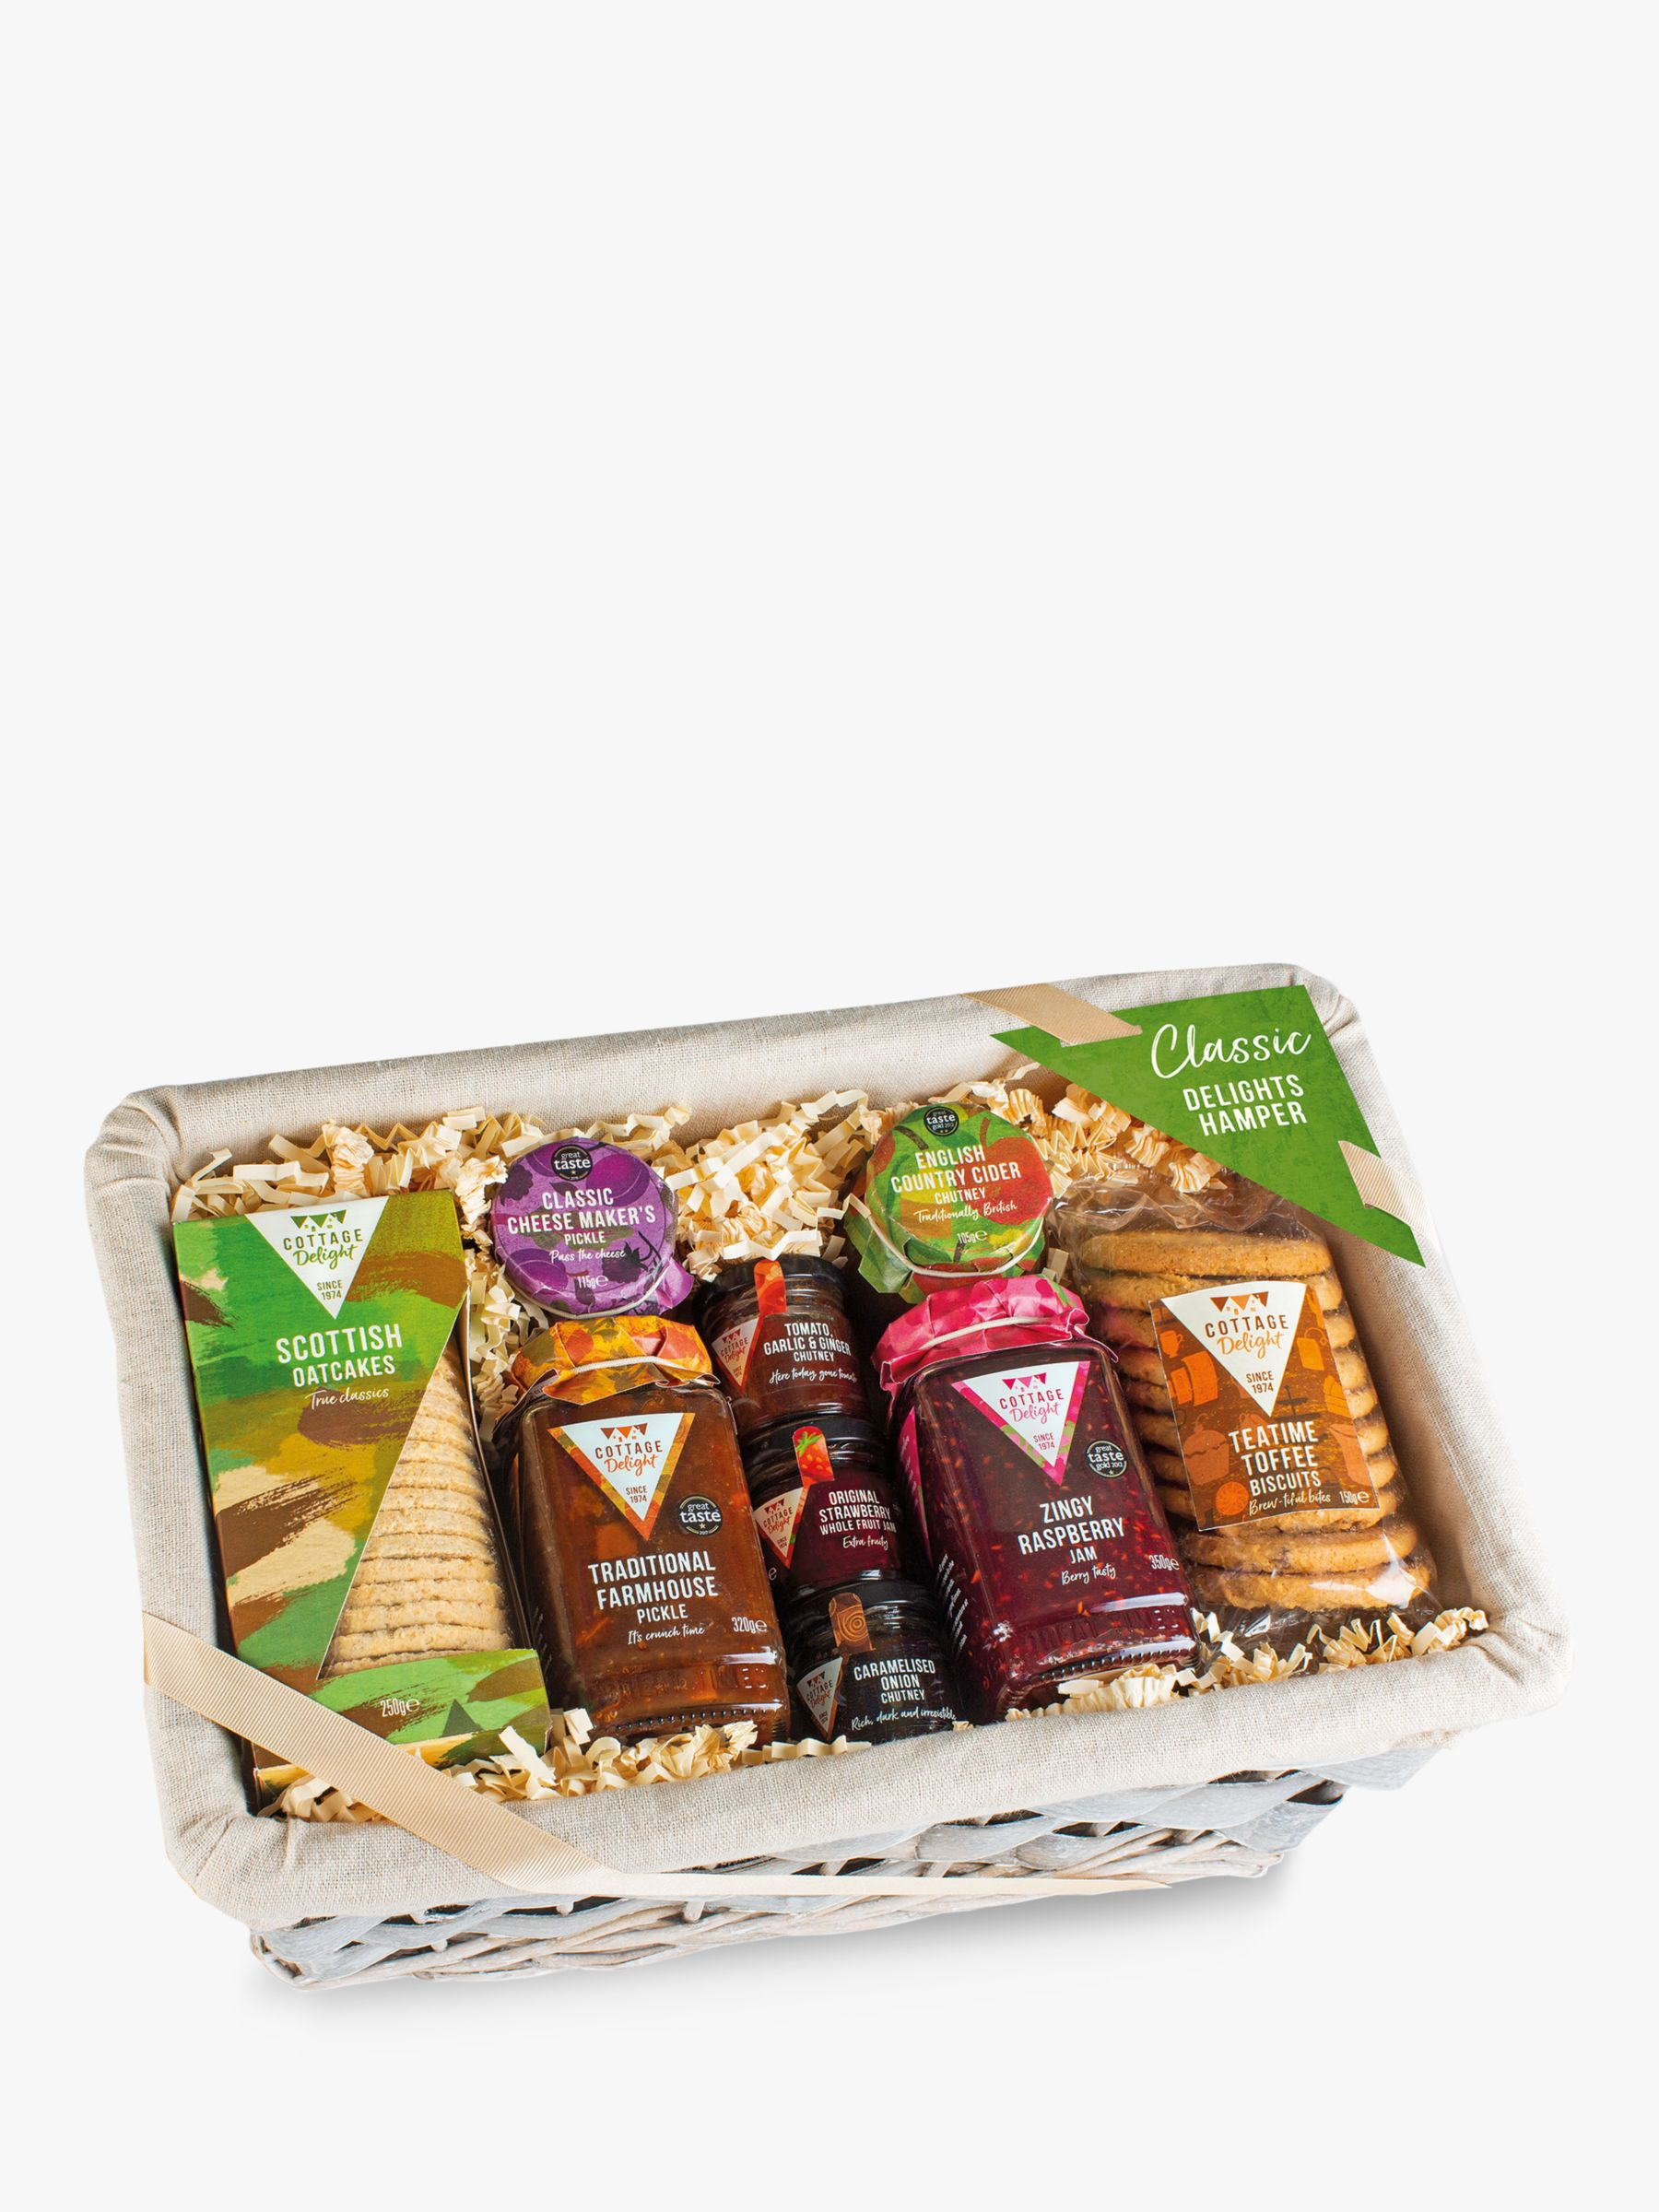 Cottage Delight Cottage Delight Classic Delights Hamper